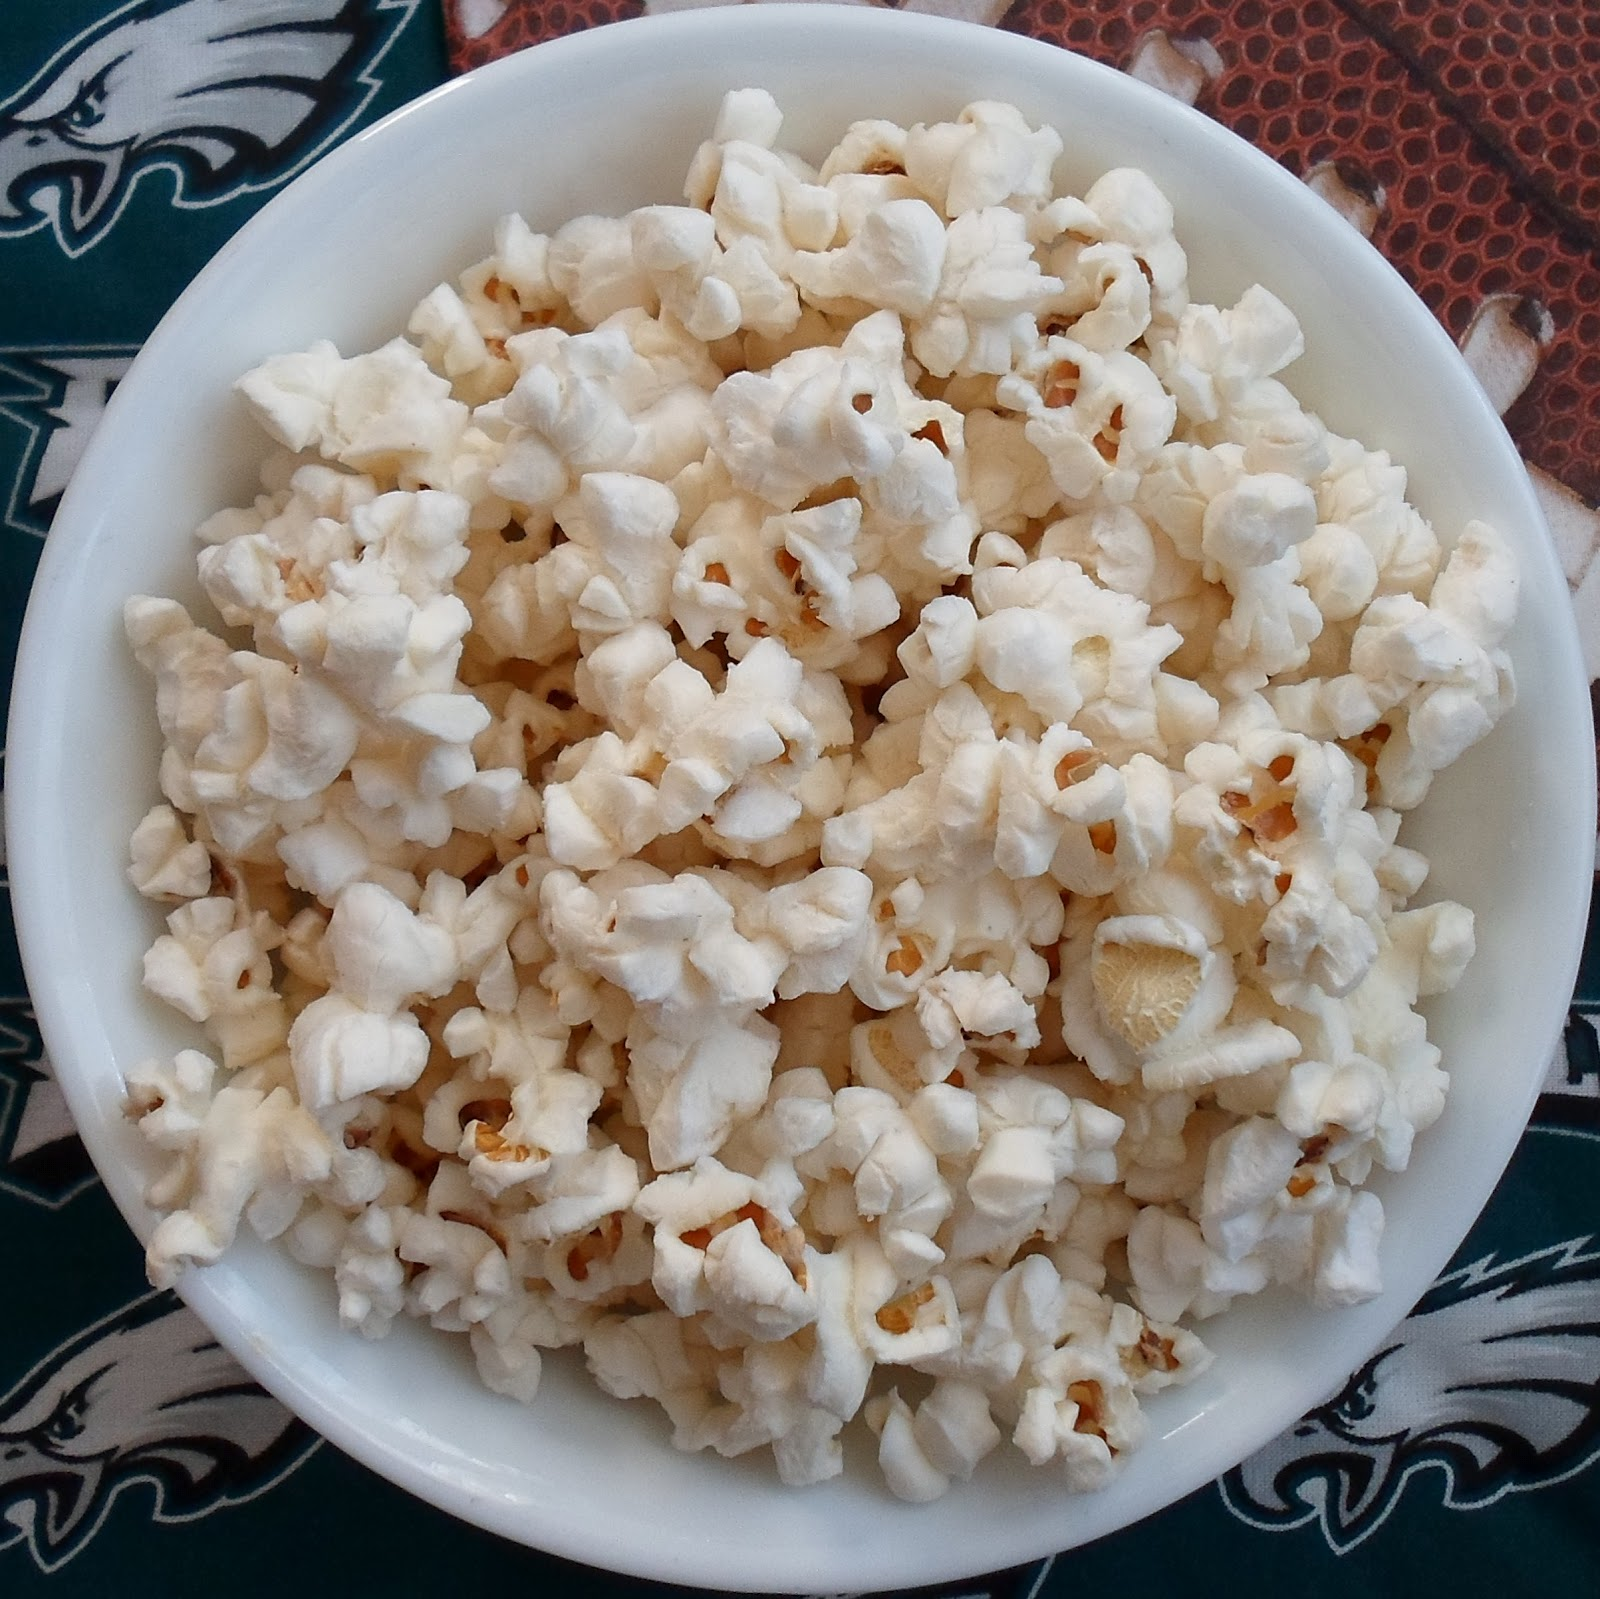 Happier Than A Pig In Mud: Bacon Popcorn